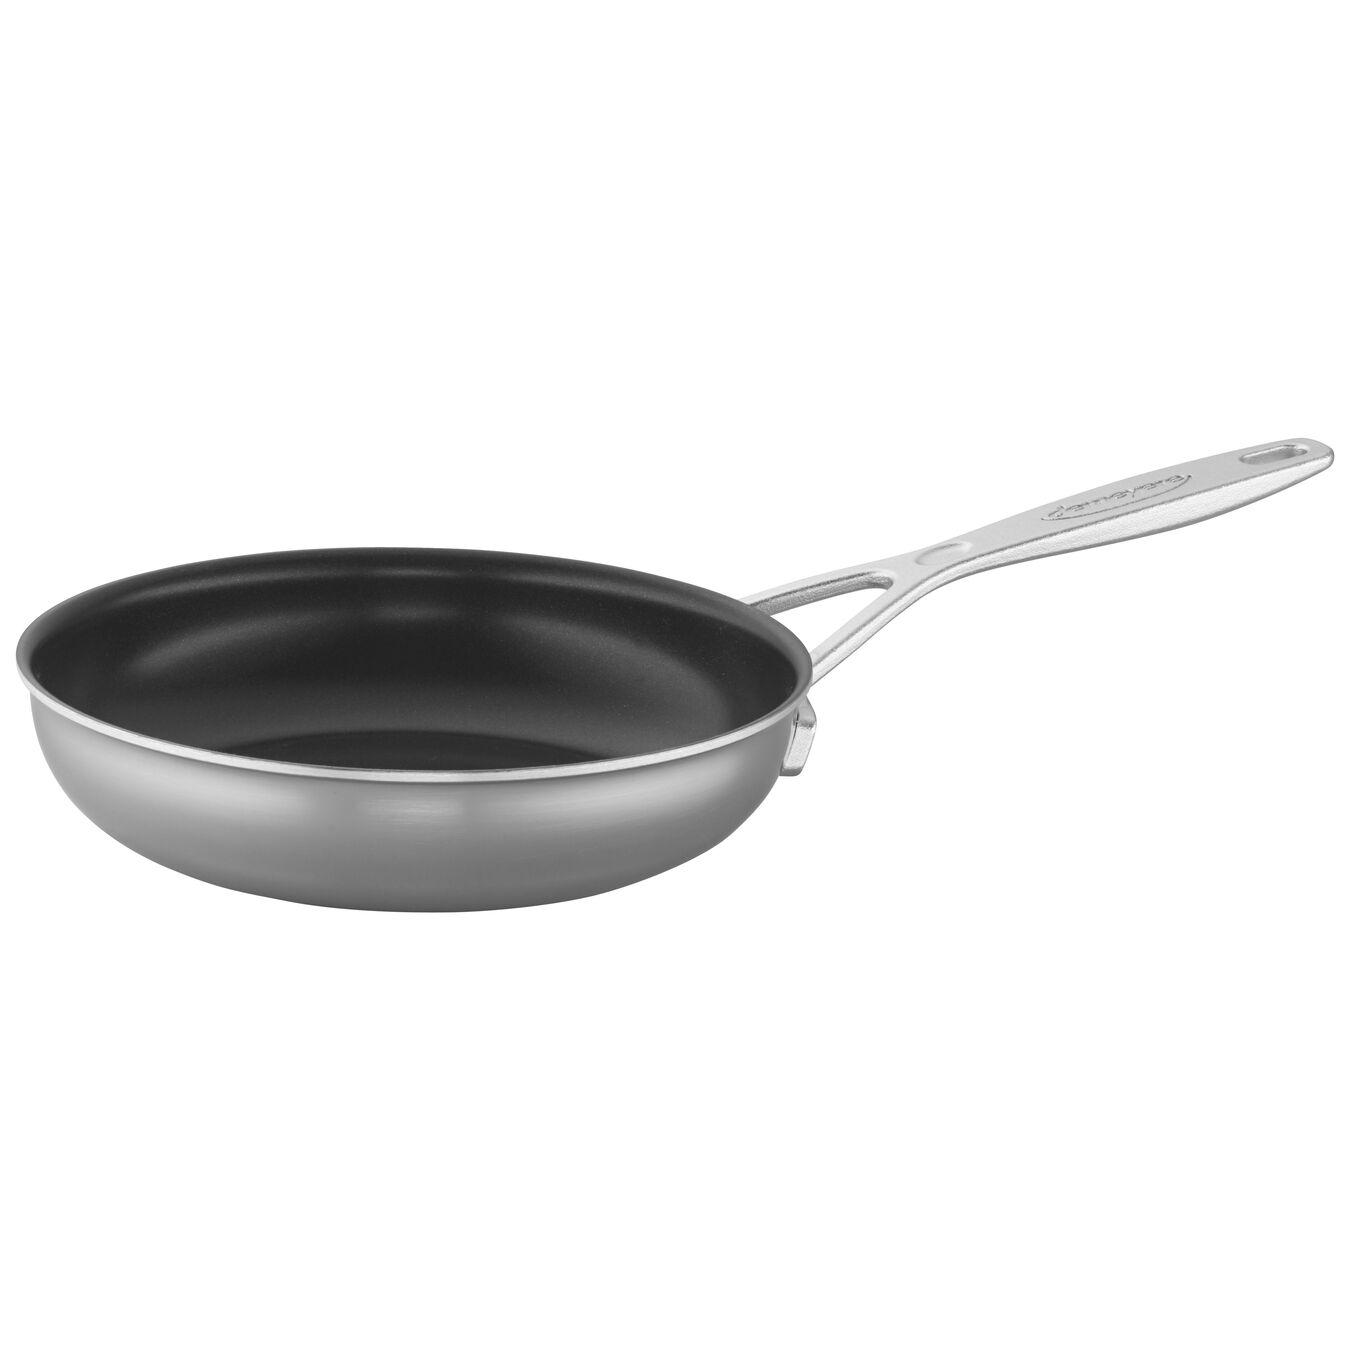 8-inch, 18/10 Stainless Steel, Non-stick, PTFE, Frying pan,,large 3